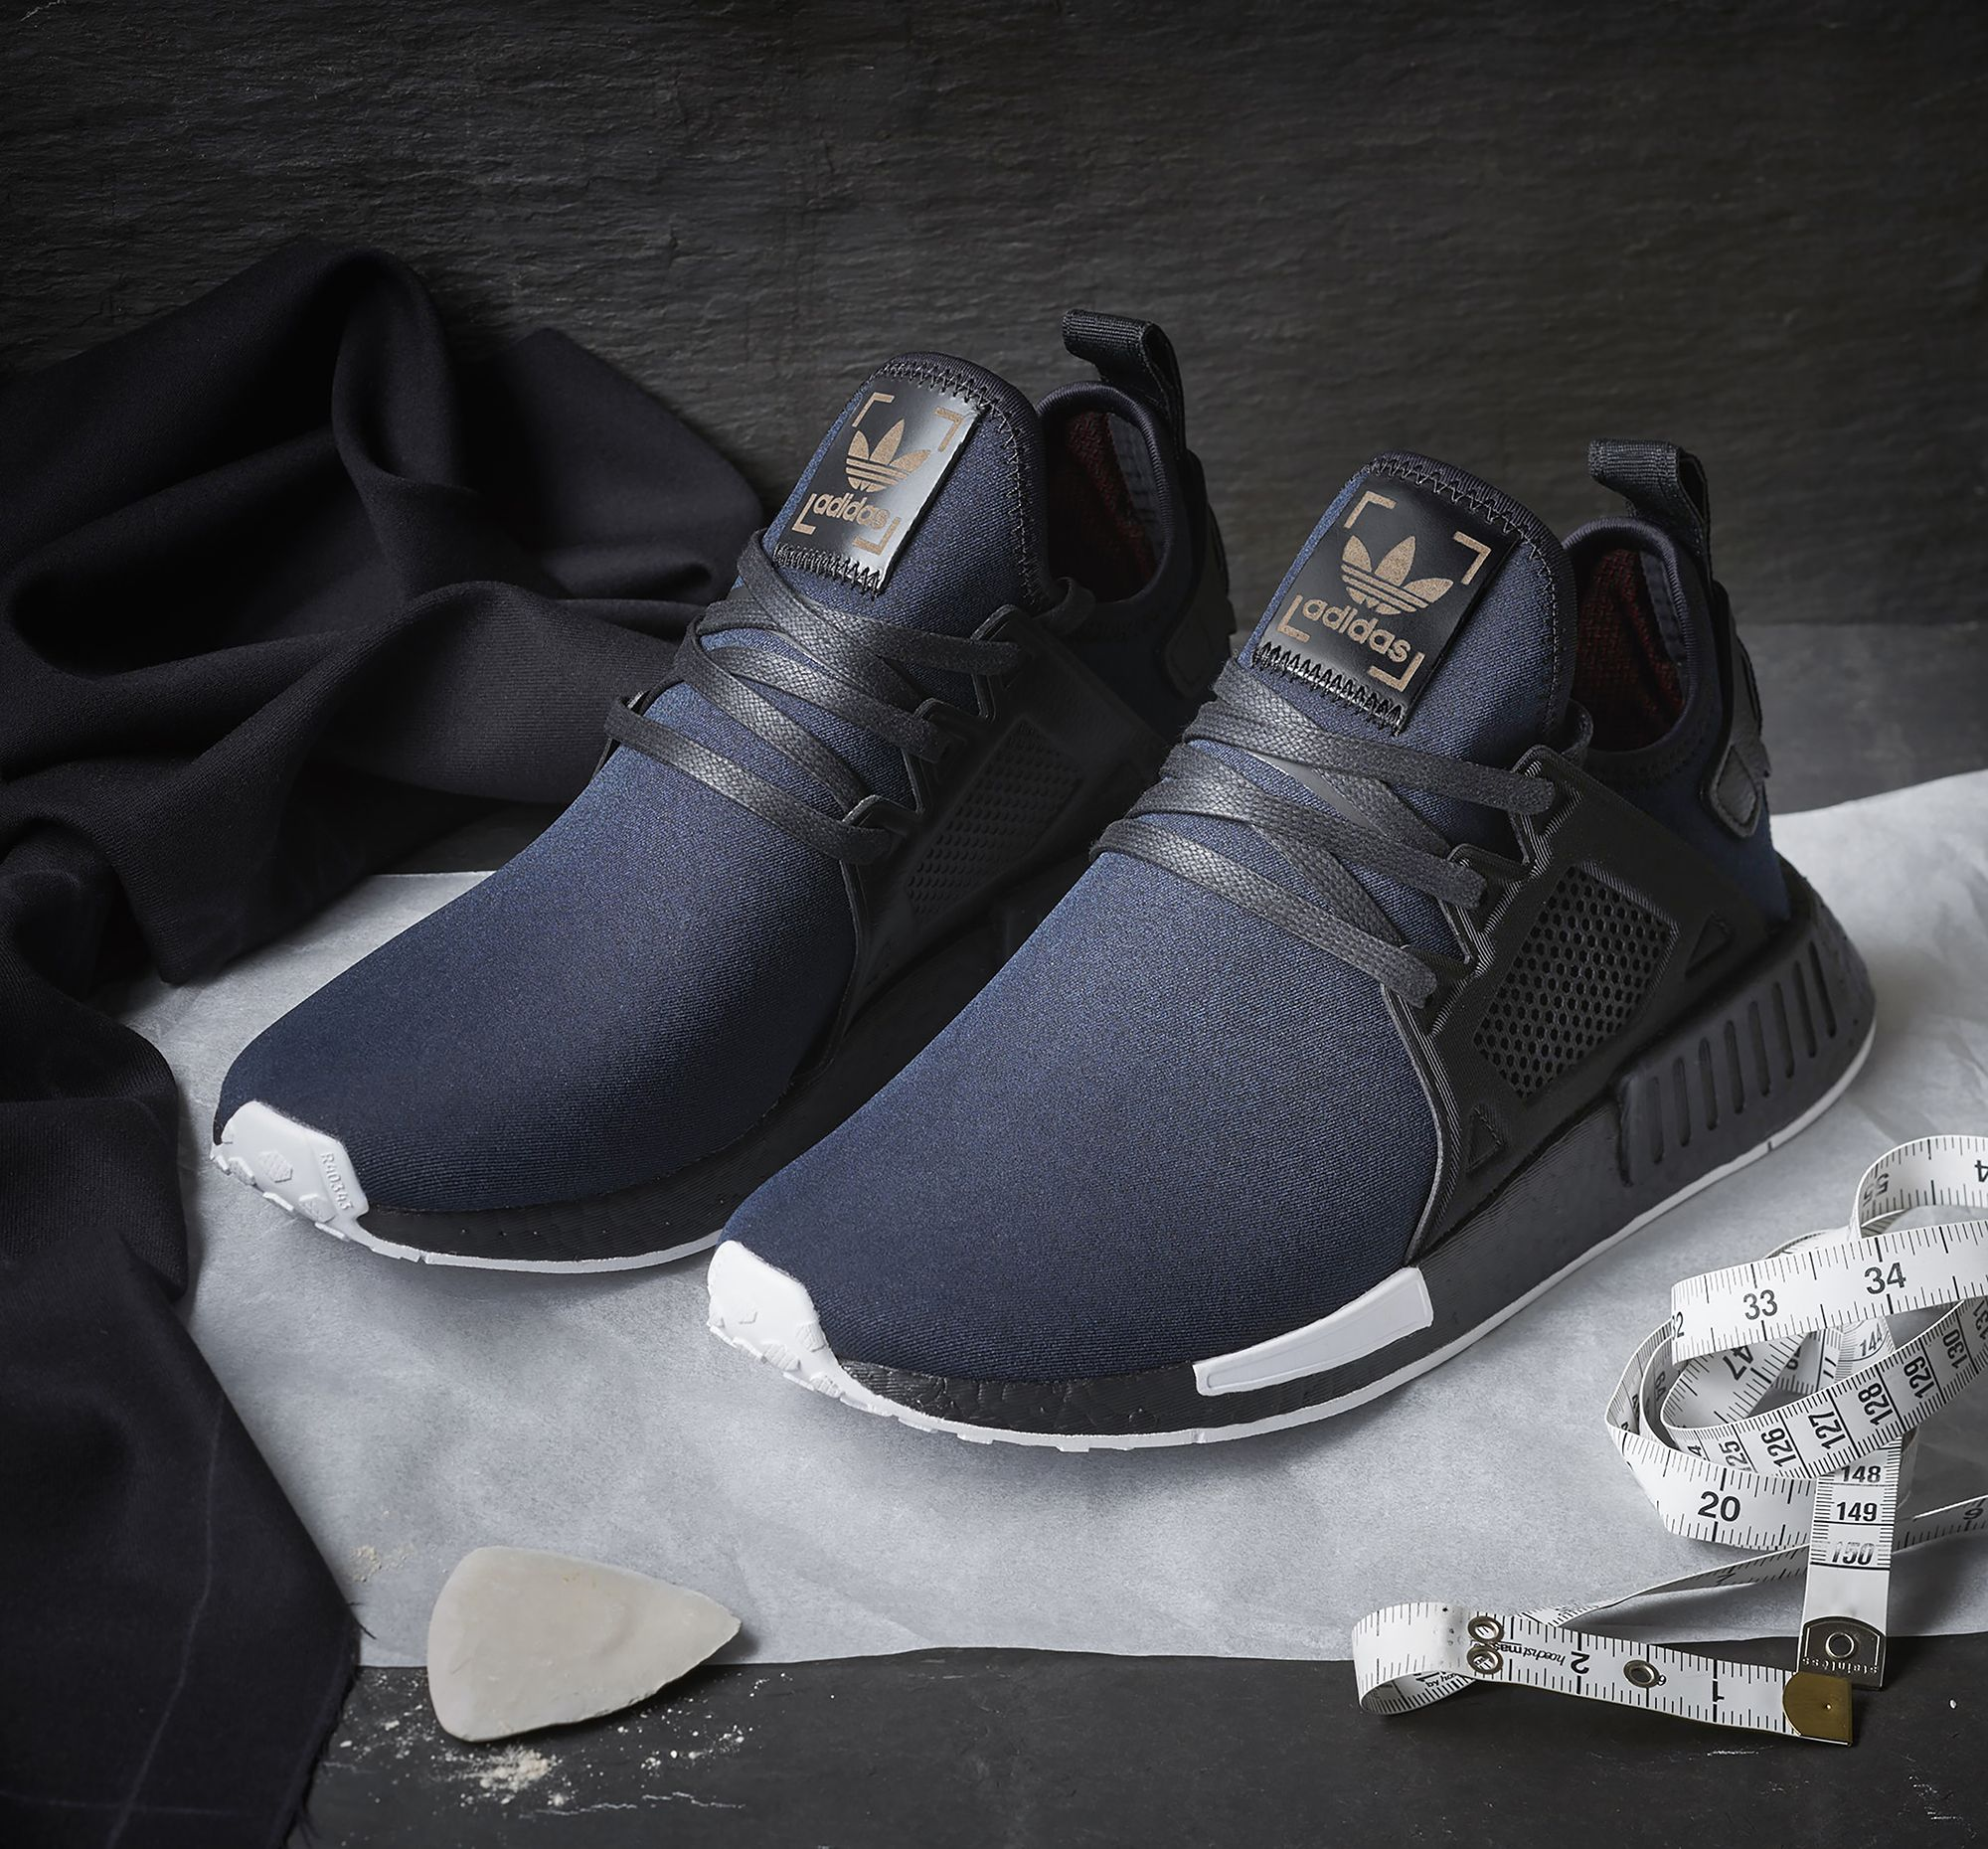 brand new ede48 a6d25 adidas Originals NMD x size  x Henry Poole Collection   Fashion  Dress,Shos,bags   Adidas shoes, Adidas sneakers, Kid shoes